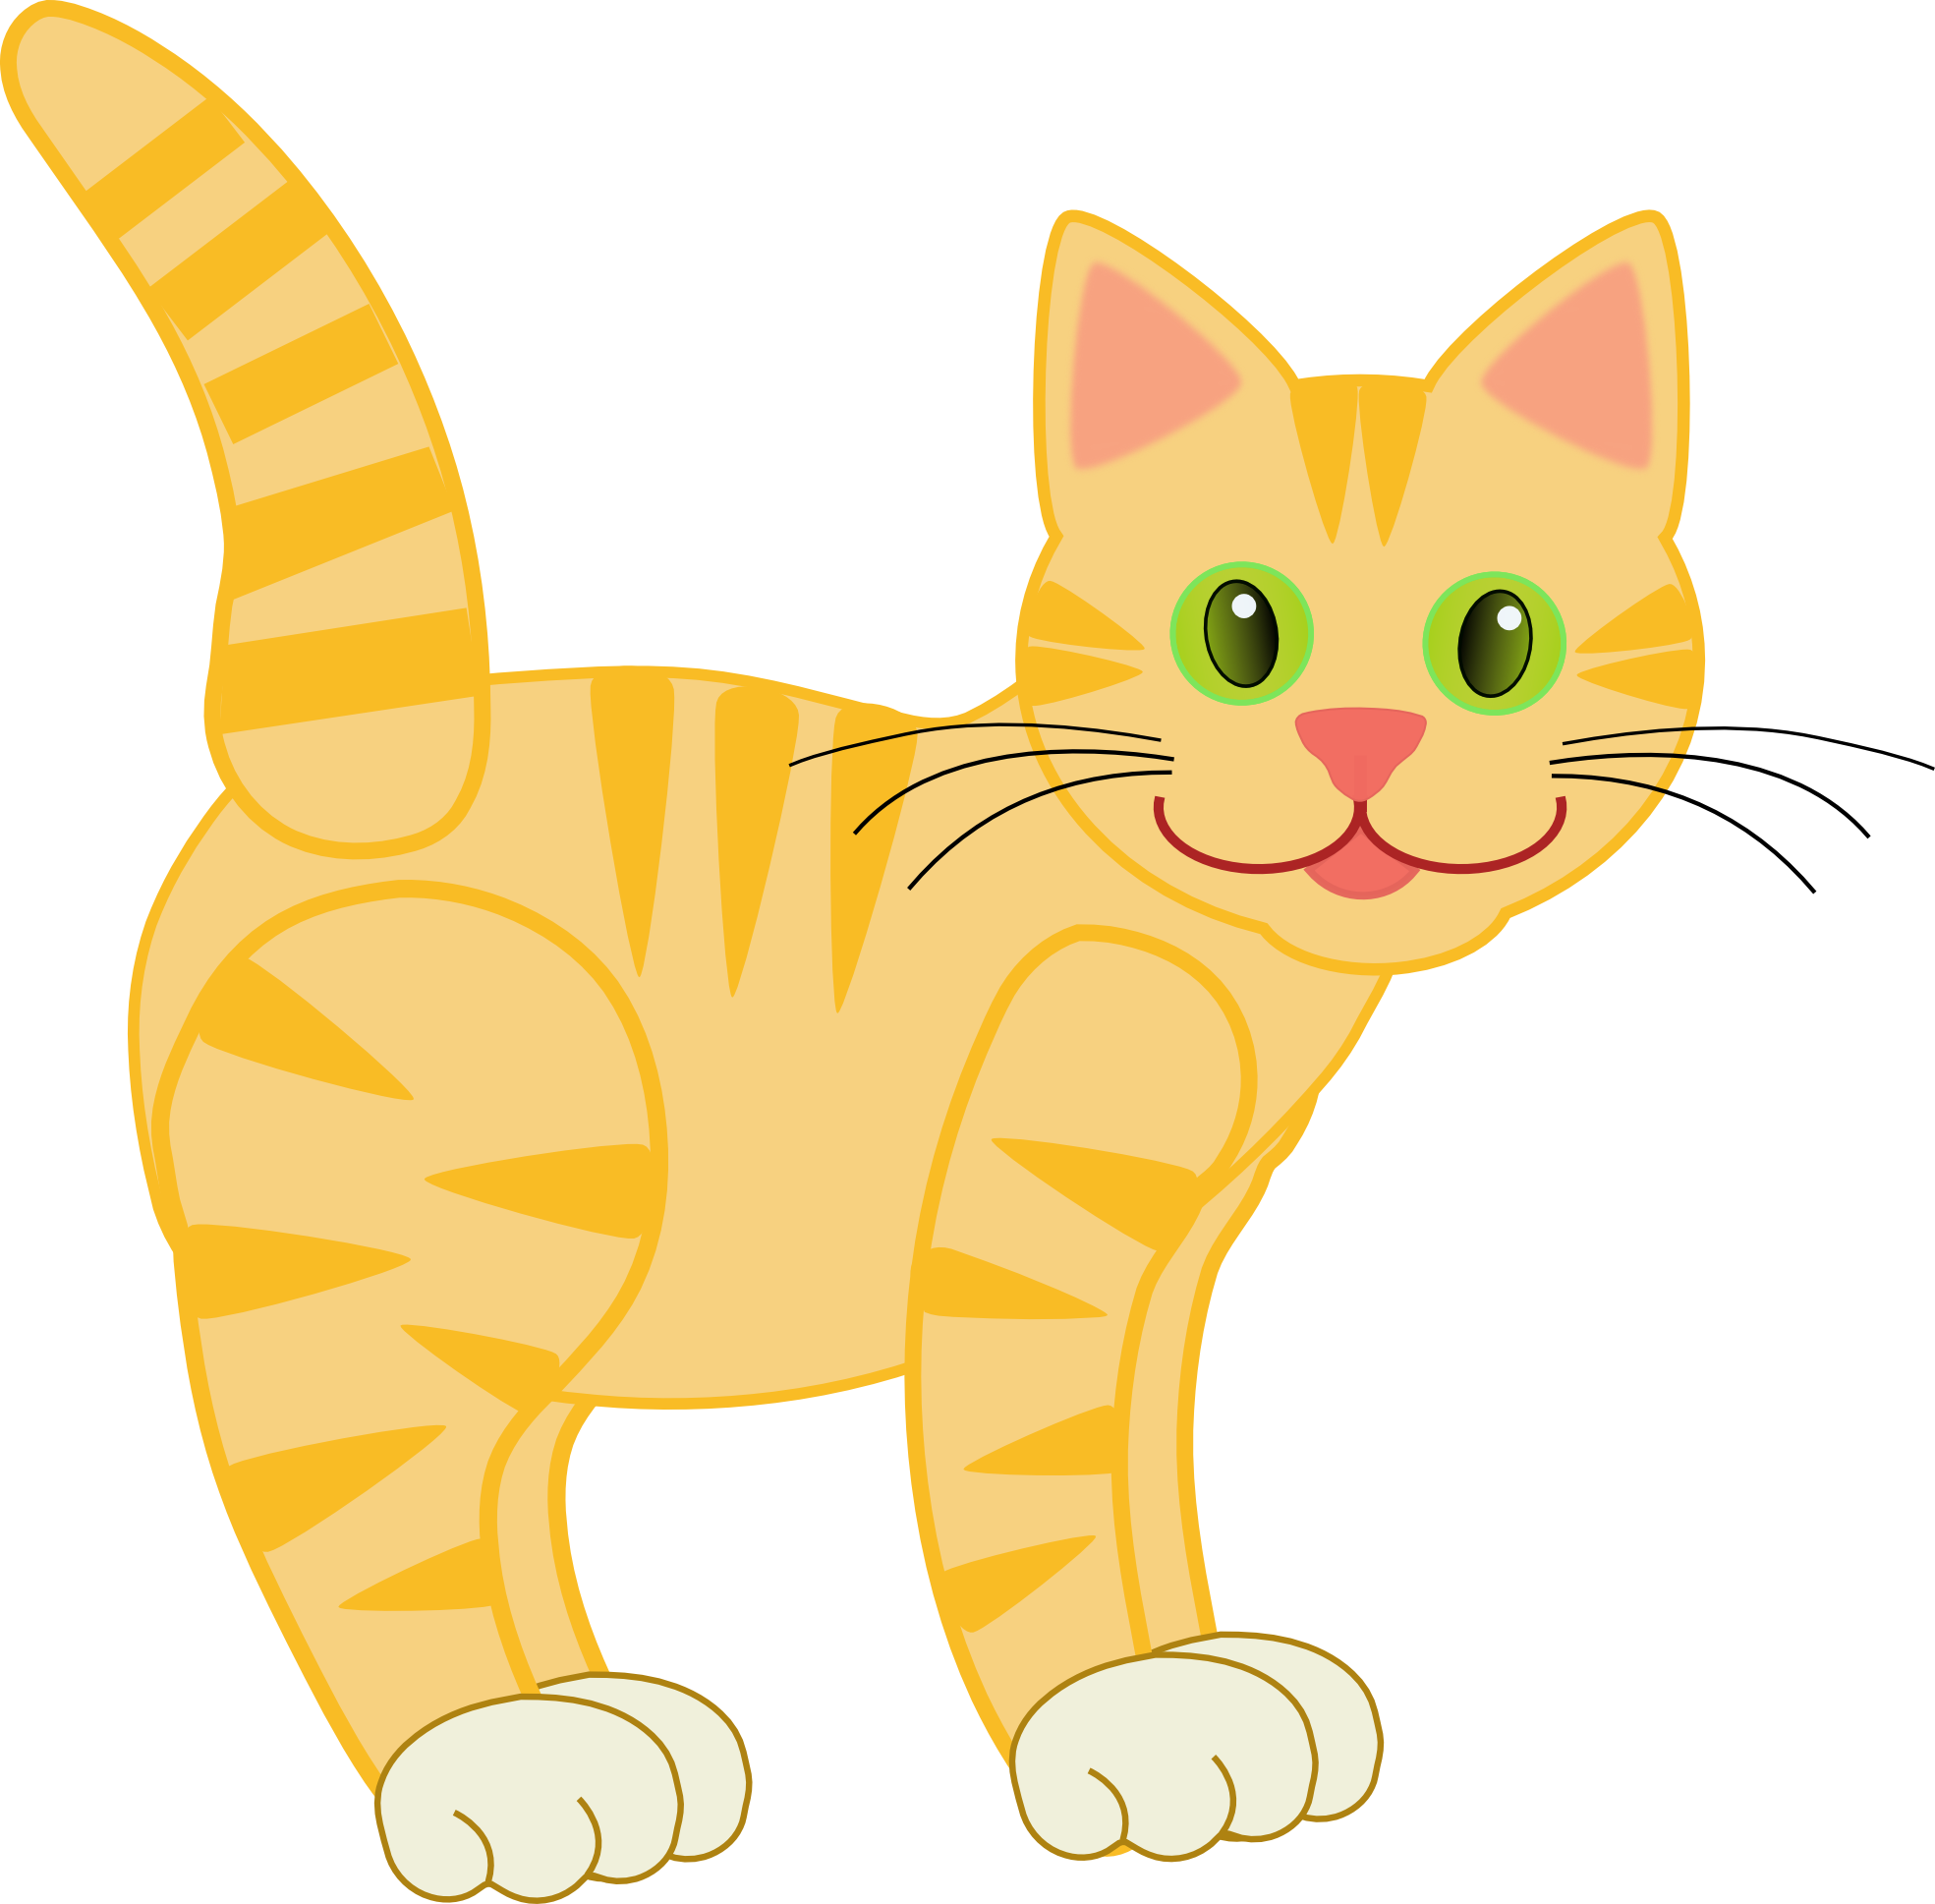 Feed cat clipart png royalty free Clip art version2 yellow tiger cat | 15.10.8 | Pinterest | Clip art ... png royalty free